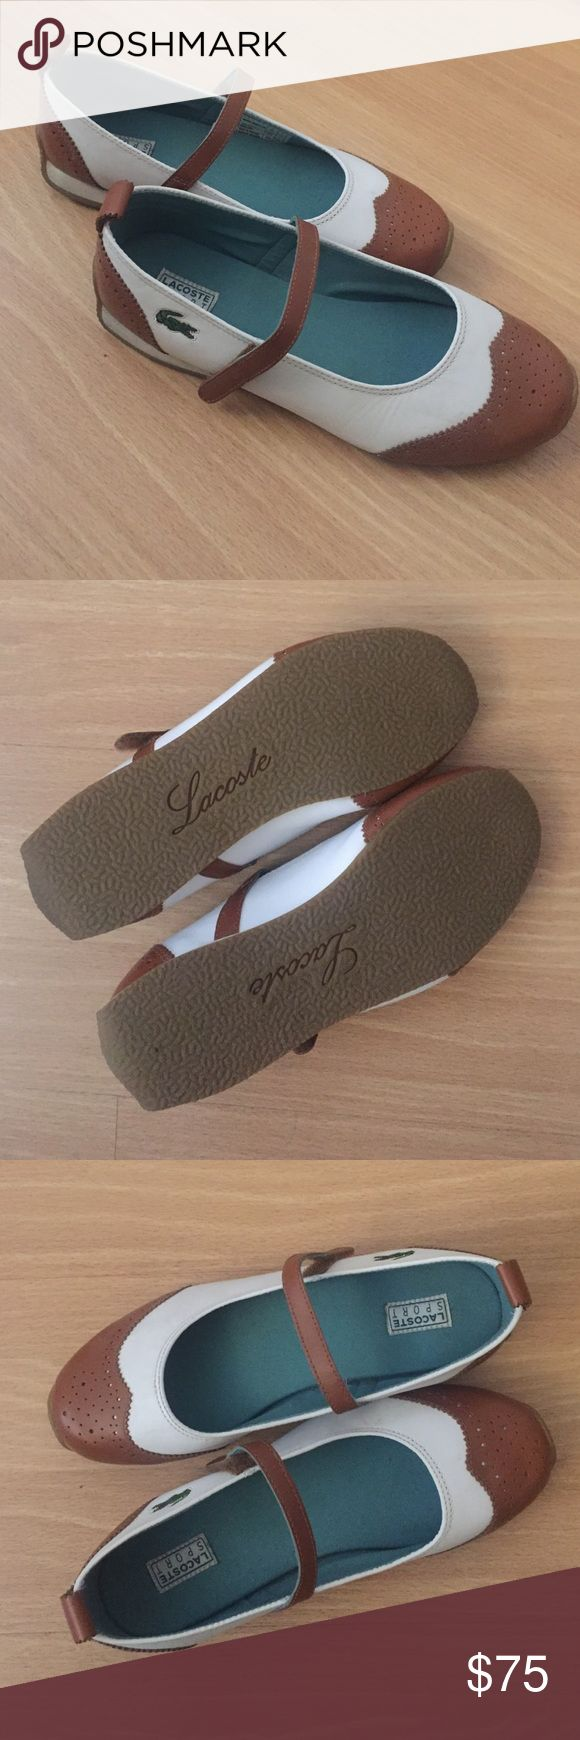 SALE! 🎉 Brand New Lacoste Flats Adorable preppy Lacoste Flats. BRAND NEW NEVER WORN! - sorry I lost the box. US size 7, Euro 38. Cute 1950's Mary Jane style! On Sale! Lacoste Shoes Flats & Loafers